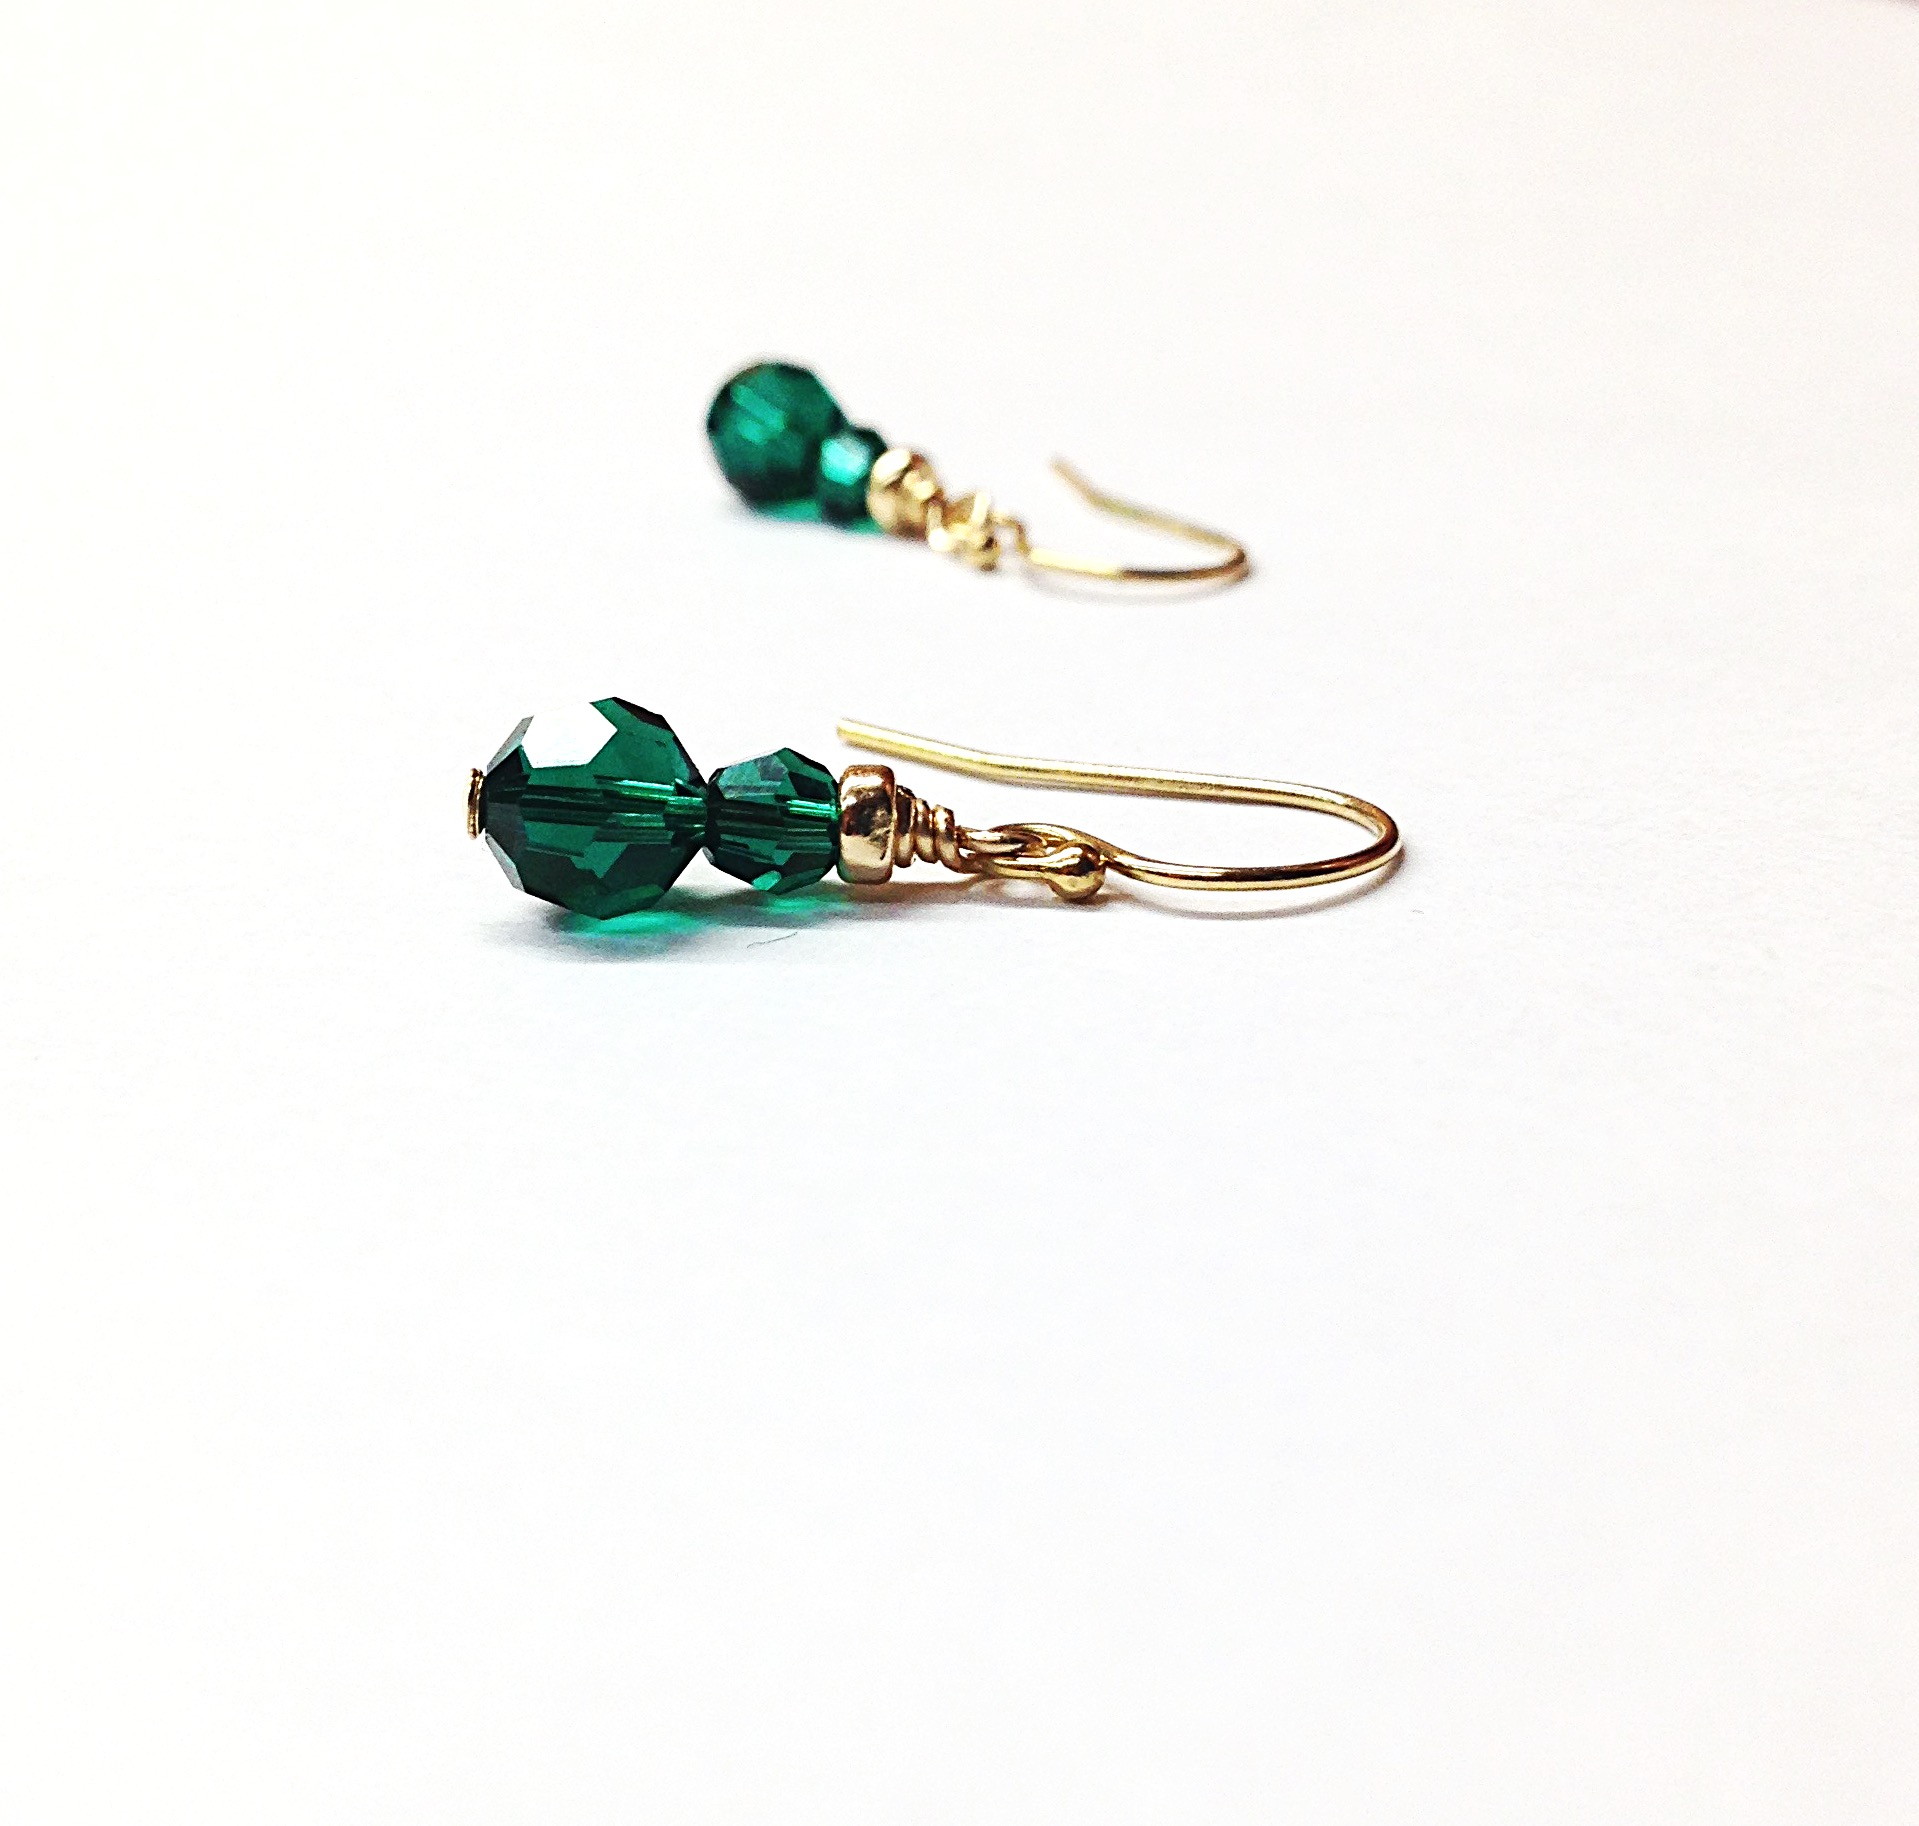 com stone earrings green stud caellisar shop with stones gold white